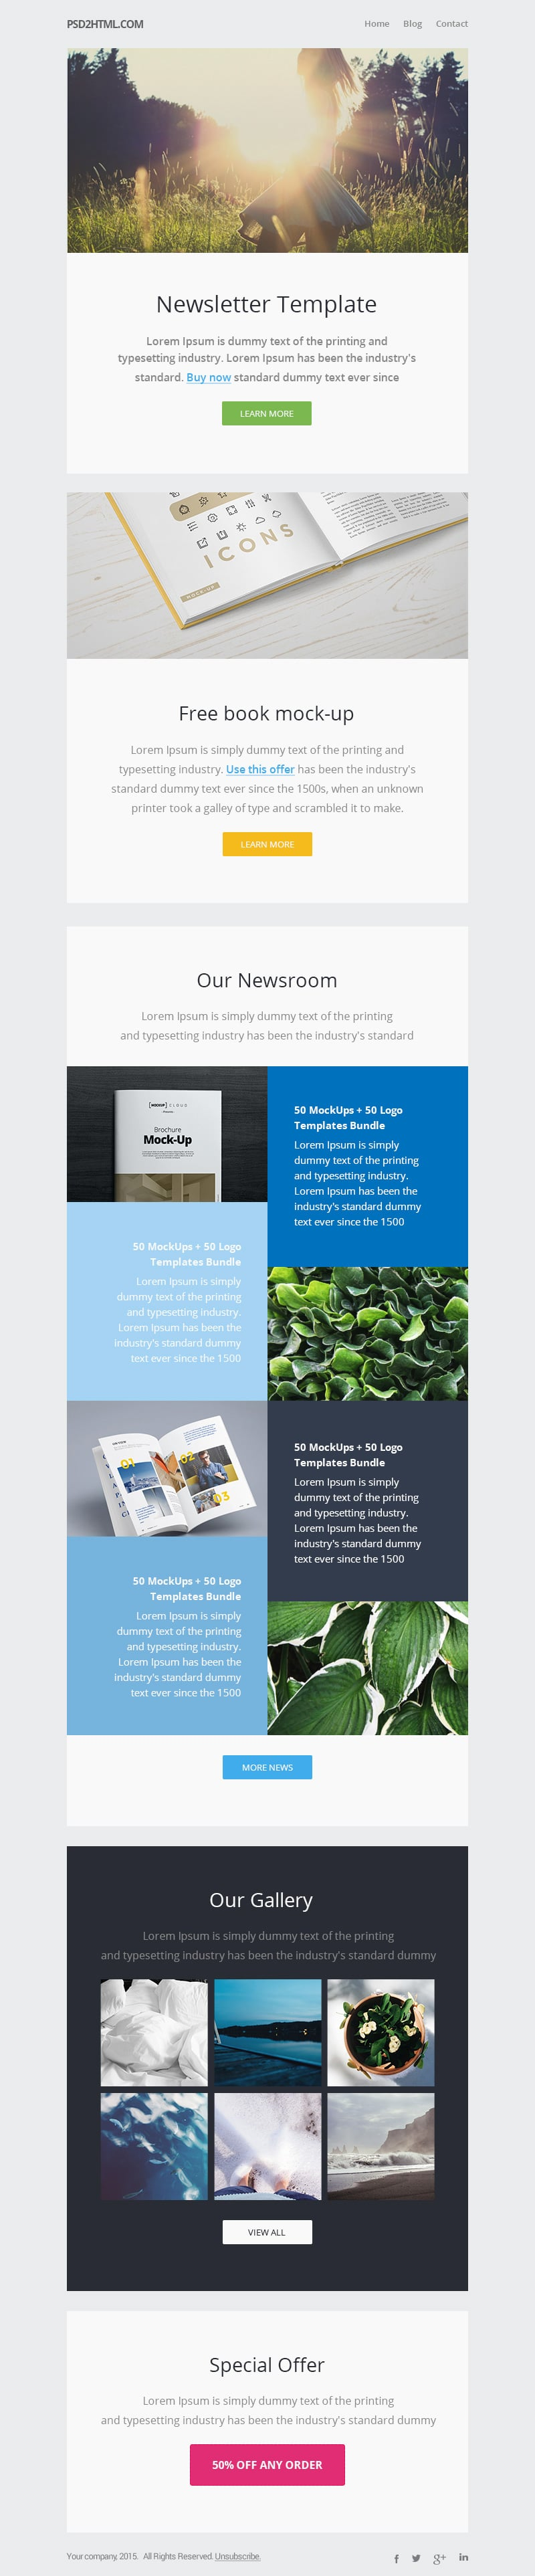 Free email newsletter templates psd css author for Free online newsletter templates for email